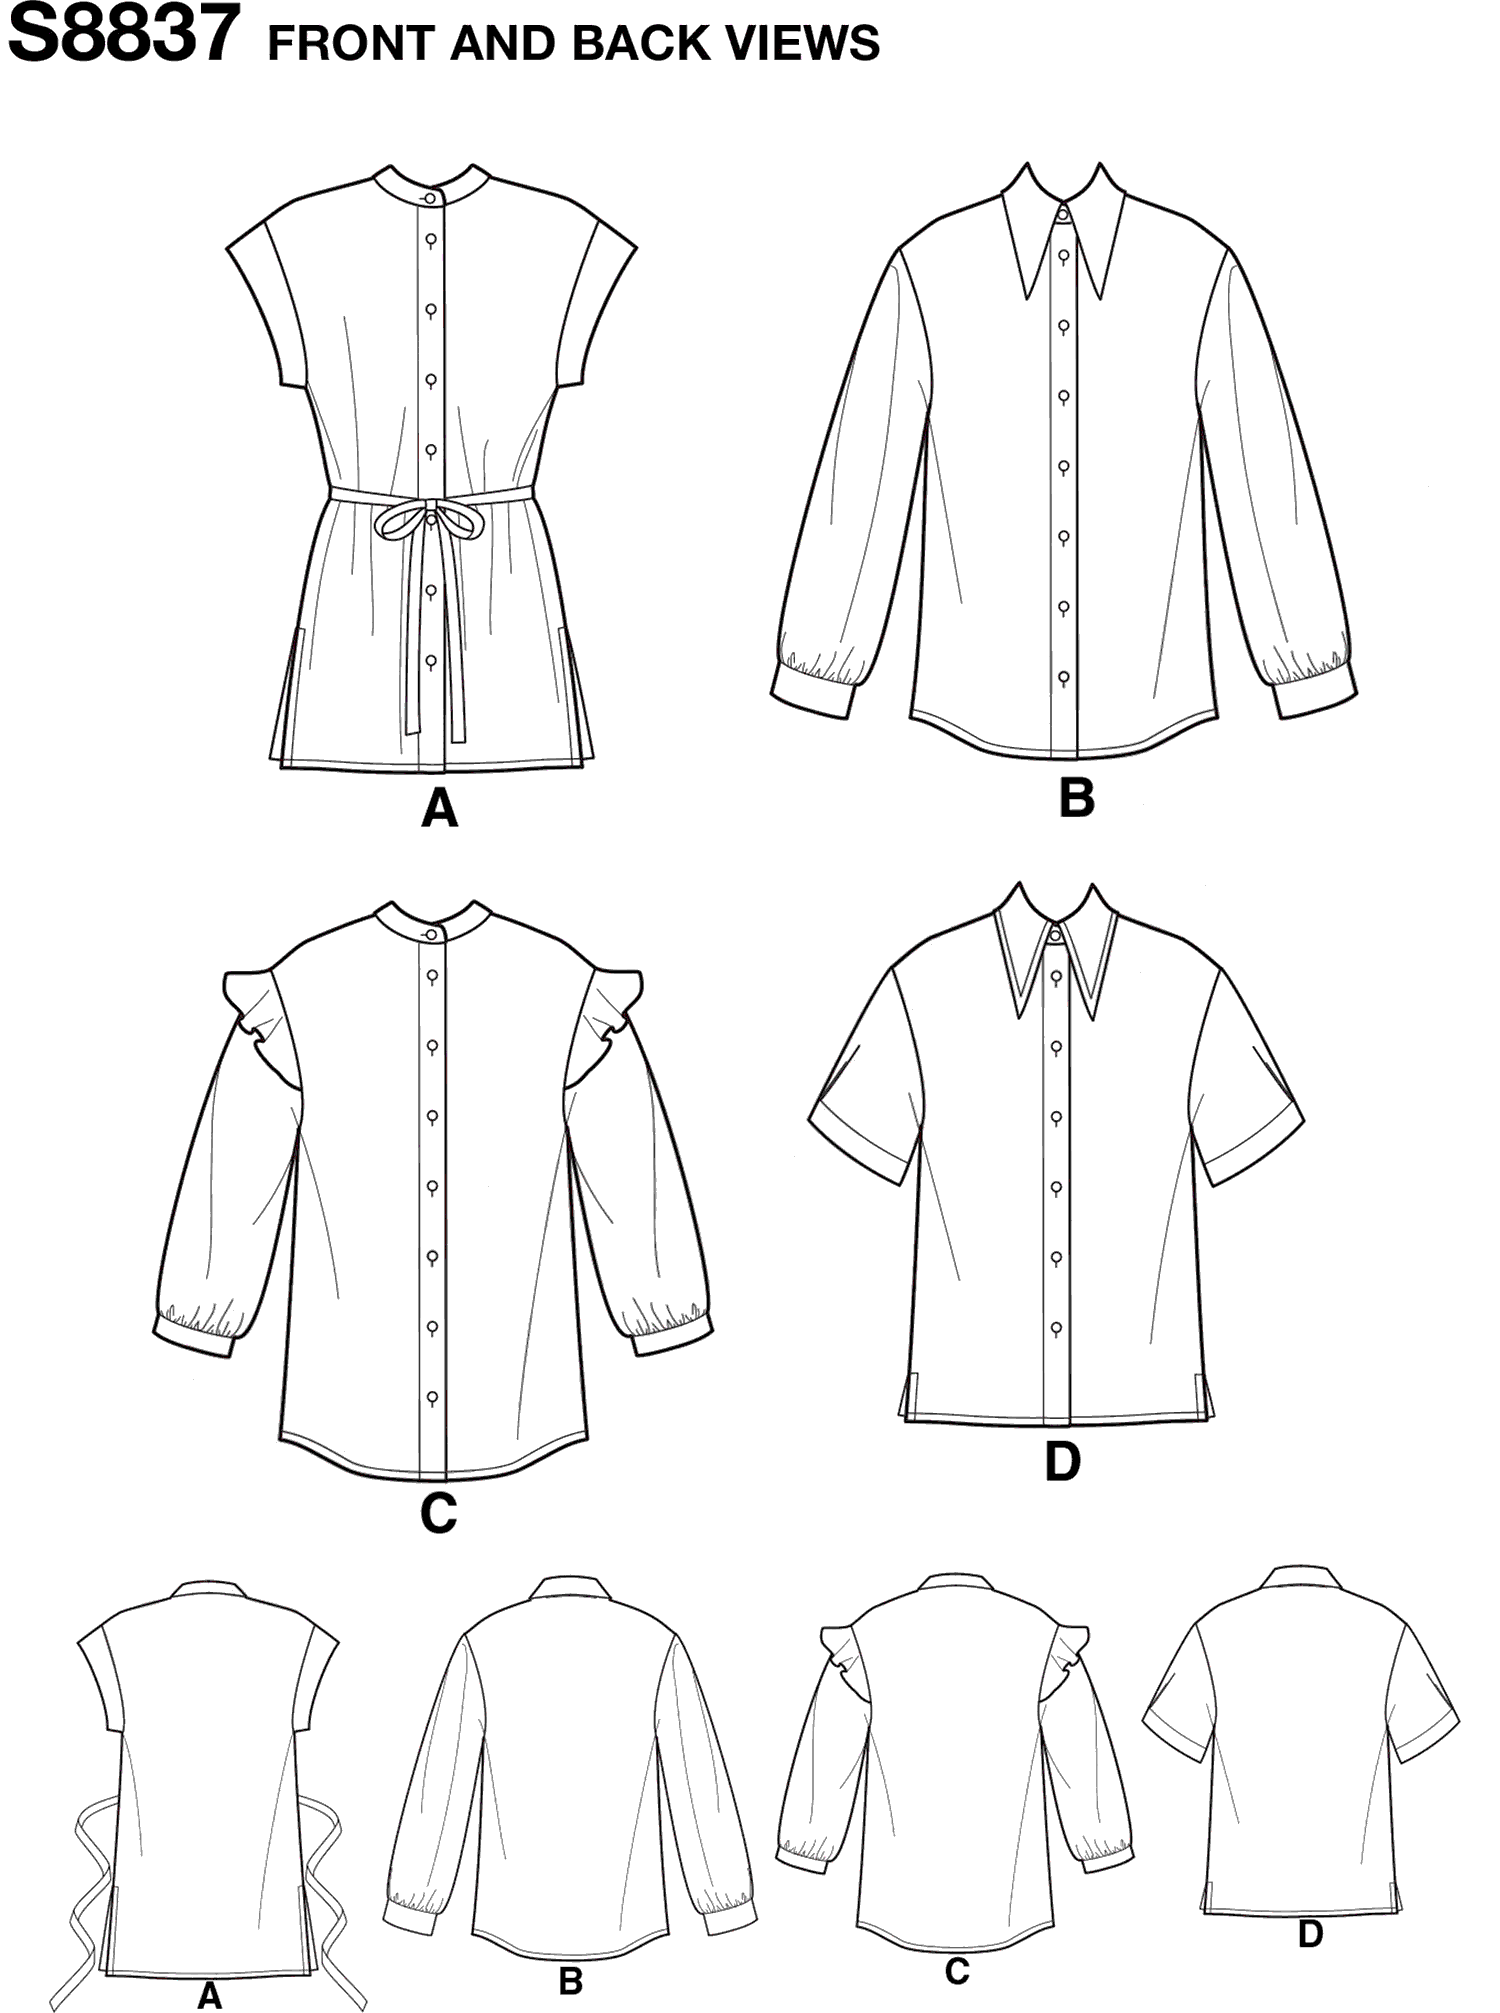 Simplicity Pattern S8837 Misses Miss Petite Collared Shirt 8837 Line Art From Patternsandplains.com